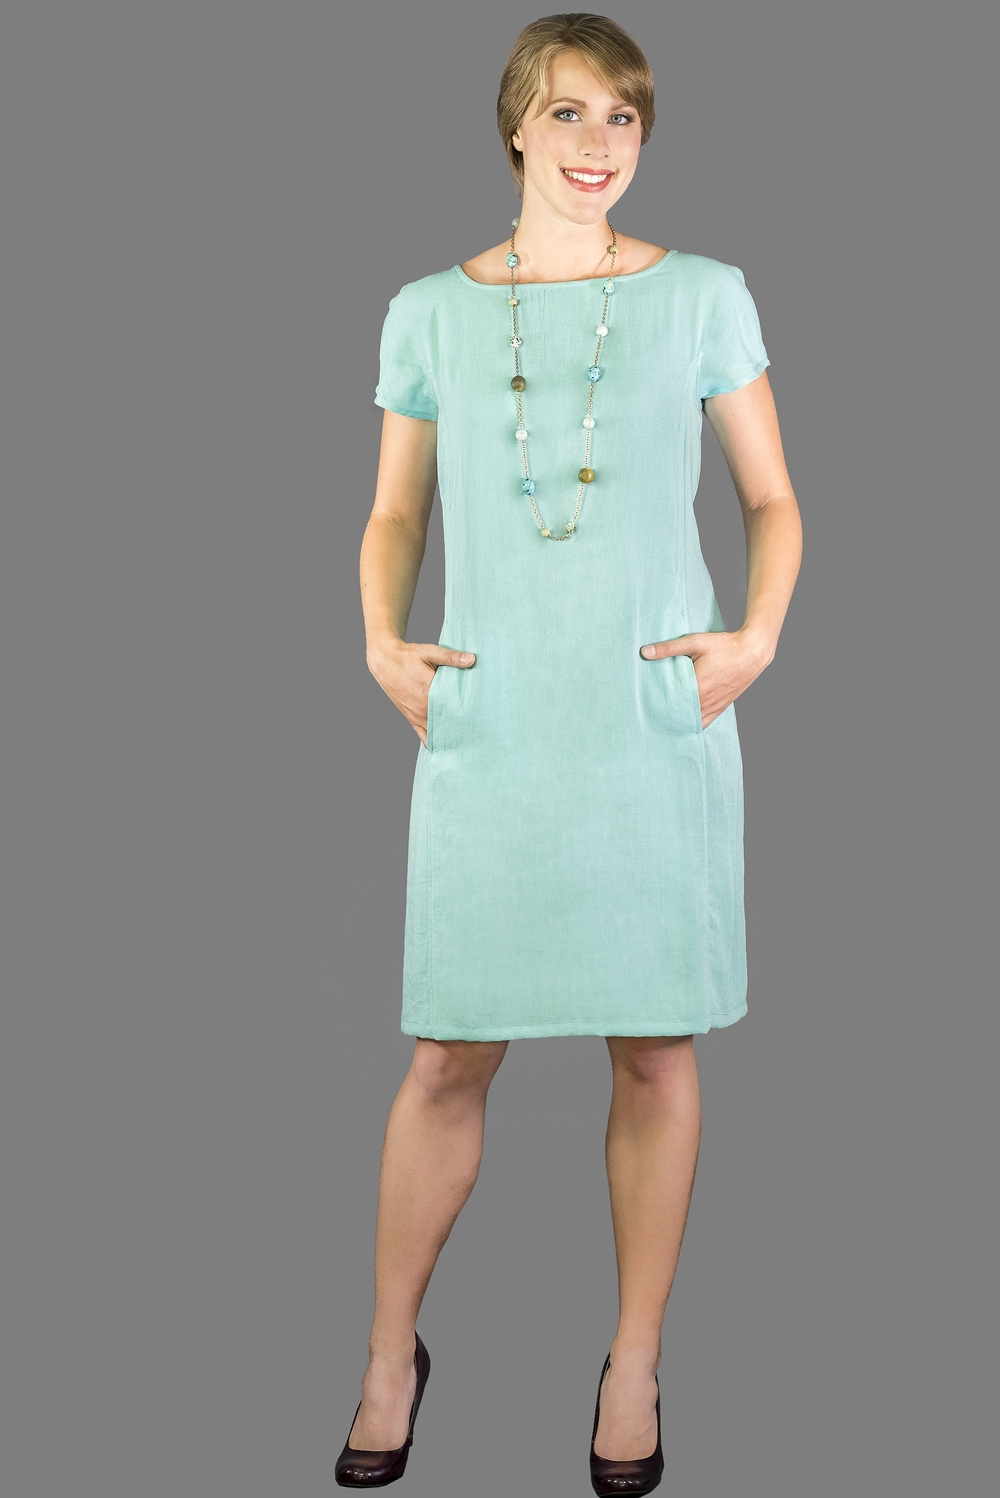 AAD199 - Cap Sleeve Dress    CL3983 - Spa